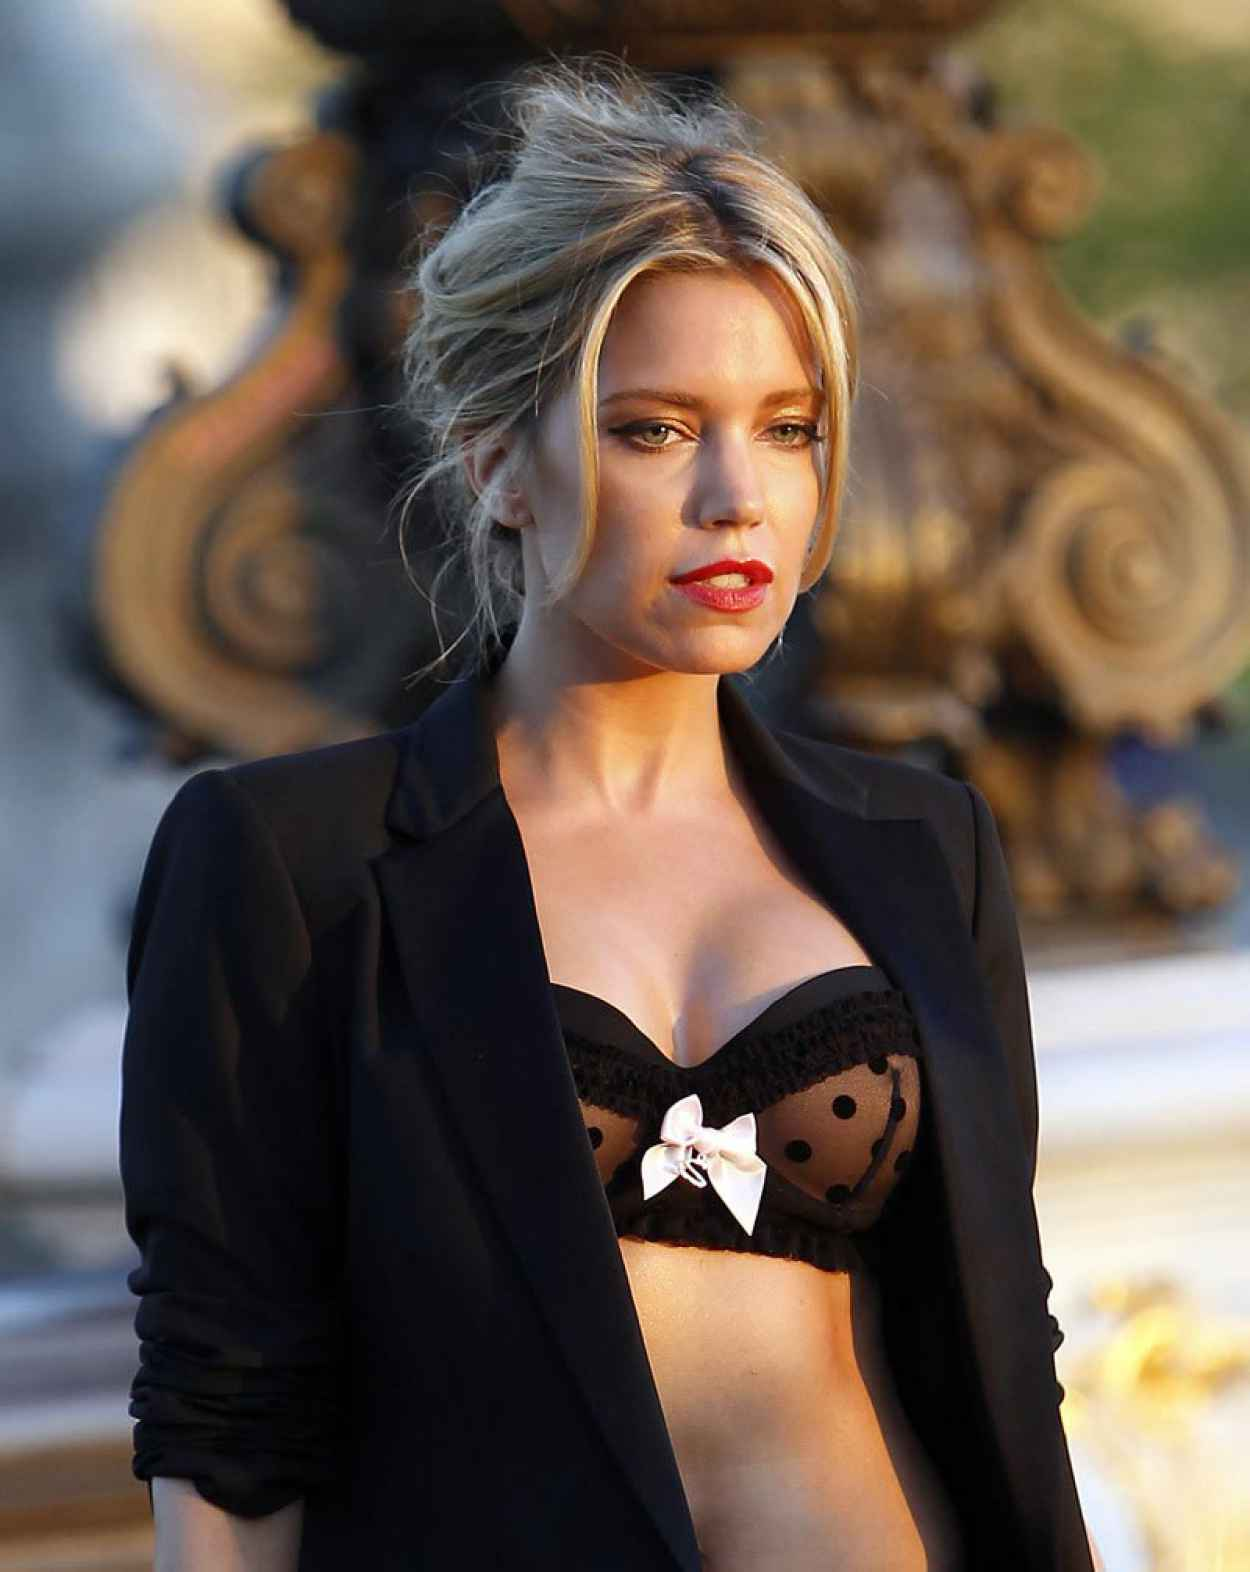 Sylvie Meis - Hunkemoller Photoshoot on the Alexandre III Bridge in Paris-1